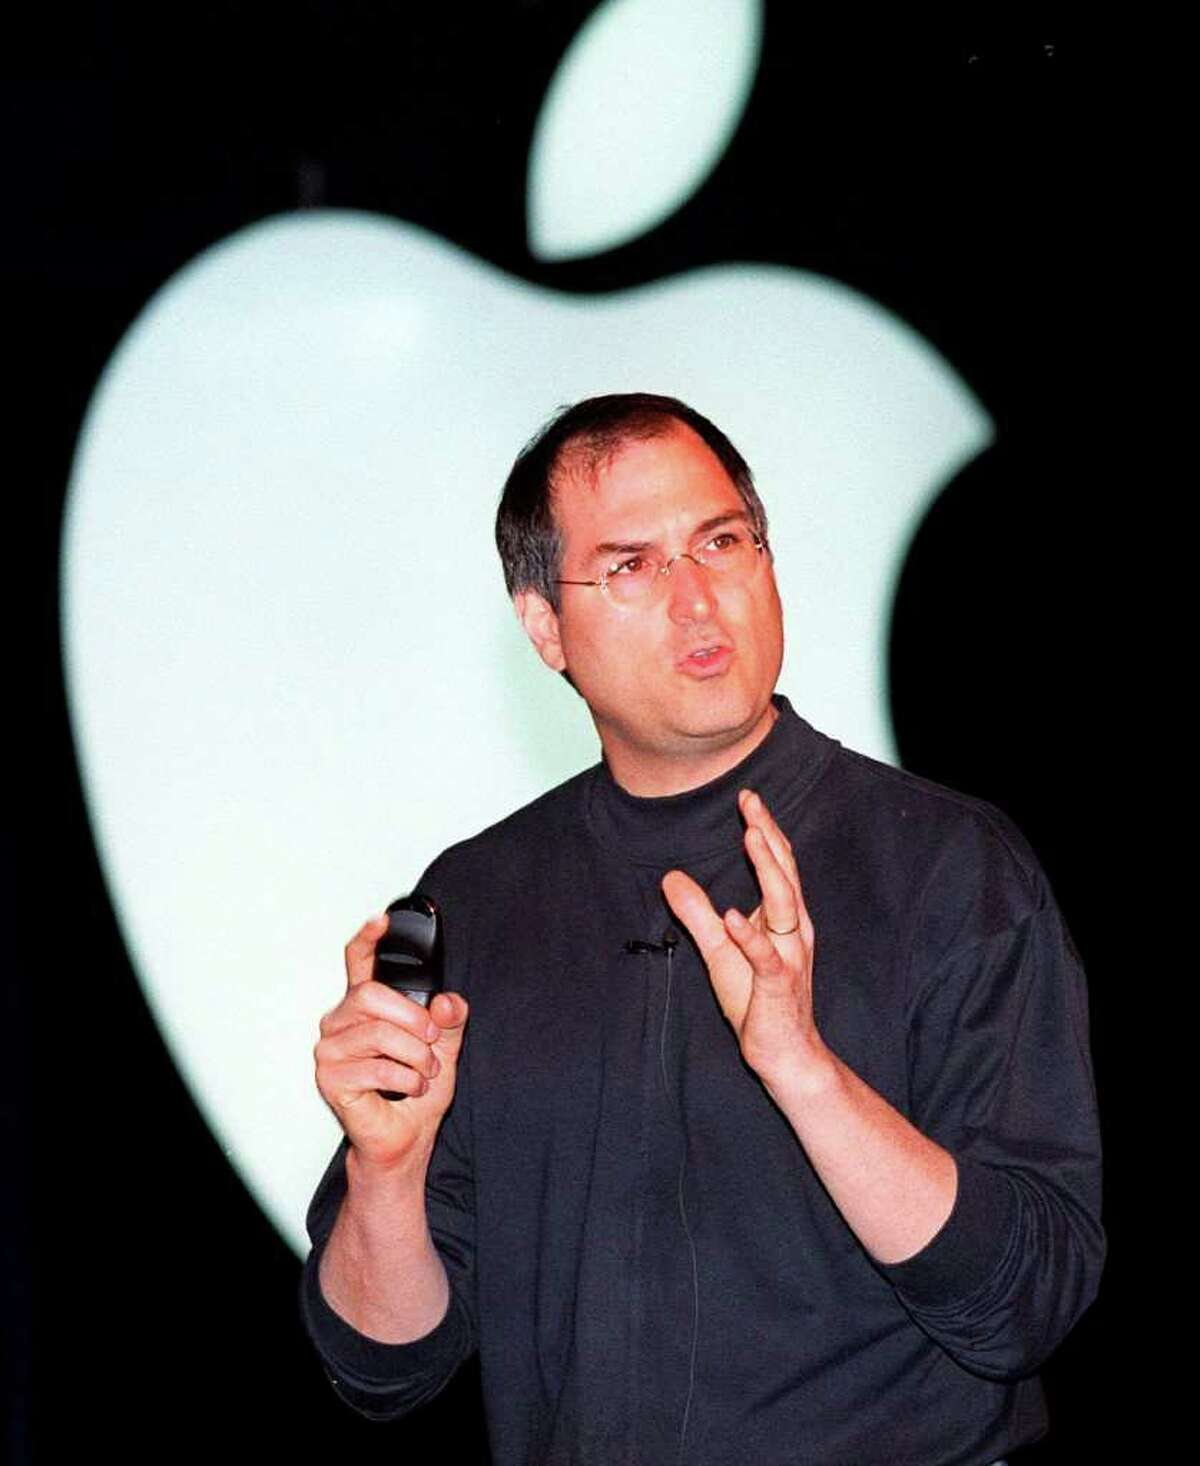 Steve Jobs, interim chief executive at Apple Computer, gestures while deilvering the keynote speech at the MacWorld Expo Wednesday, July 8, 1998, in New York. Jobs said the company will report its third straight quarterly profit next week for the quarter ended June 30, continuing its turnaround after losing $1.8 billion in its two previous fiscal years. (AP Photo/Staurt Ramson)